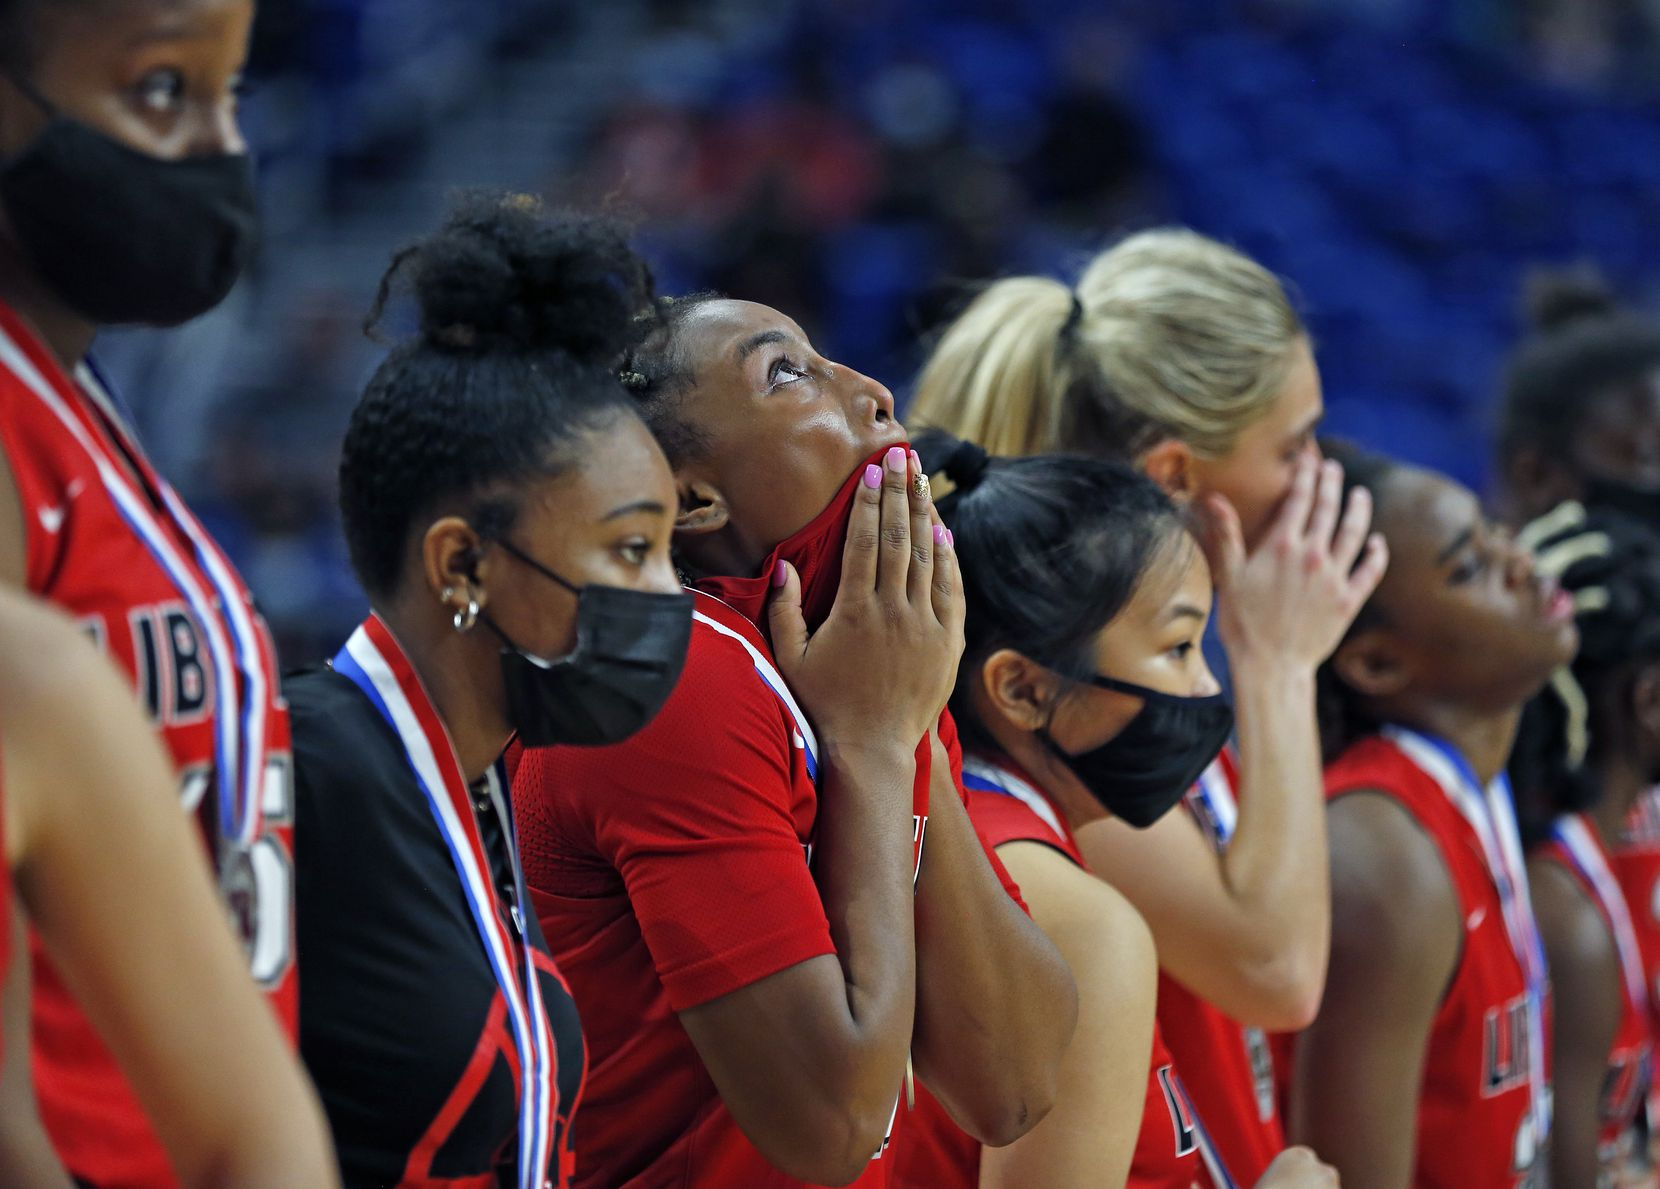 Frisco Liberty Jazzy Owens-Barnett #30 looks up and she and the rest of her teammates were dejected after losing to Cedar Park 46-39. Frisco Liberty vs. Cedar Park in girls basketball Class 5A state championship game on Wednesday, March 11, 2021 at the Alamodome.